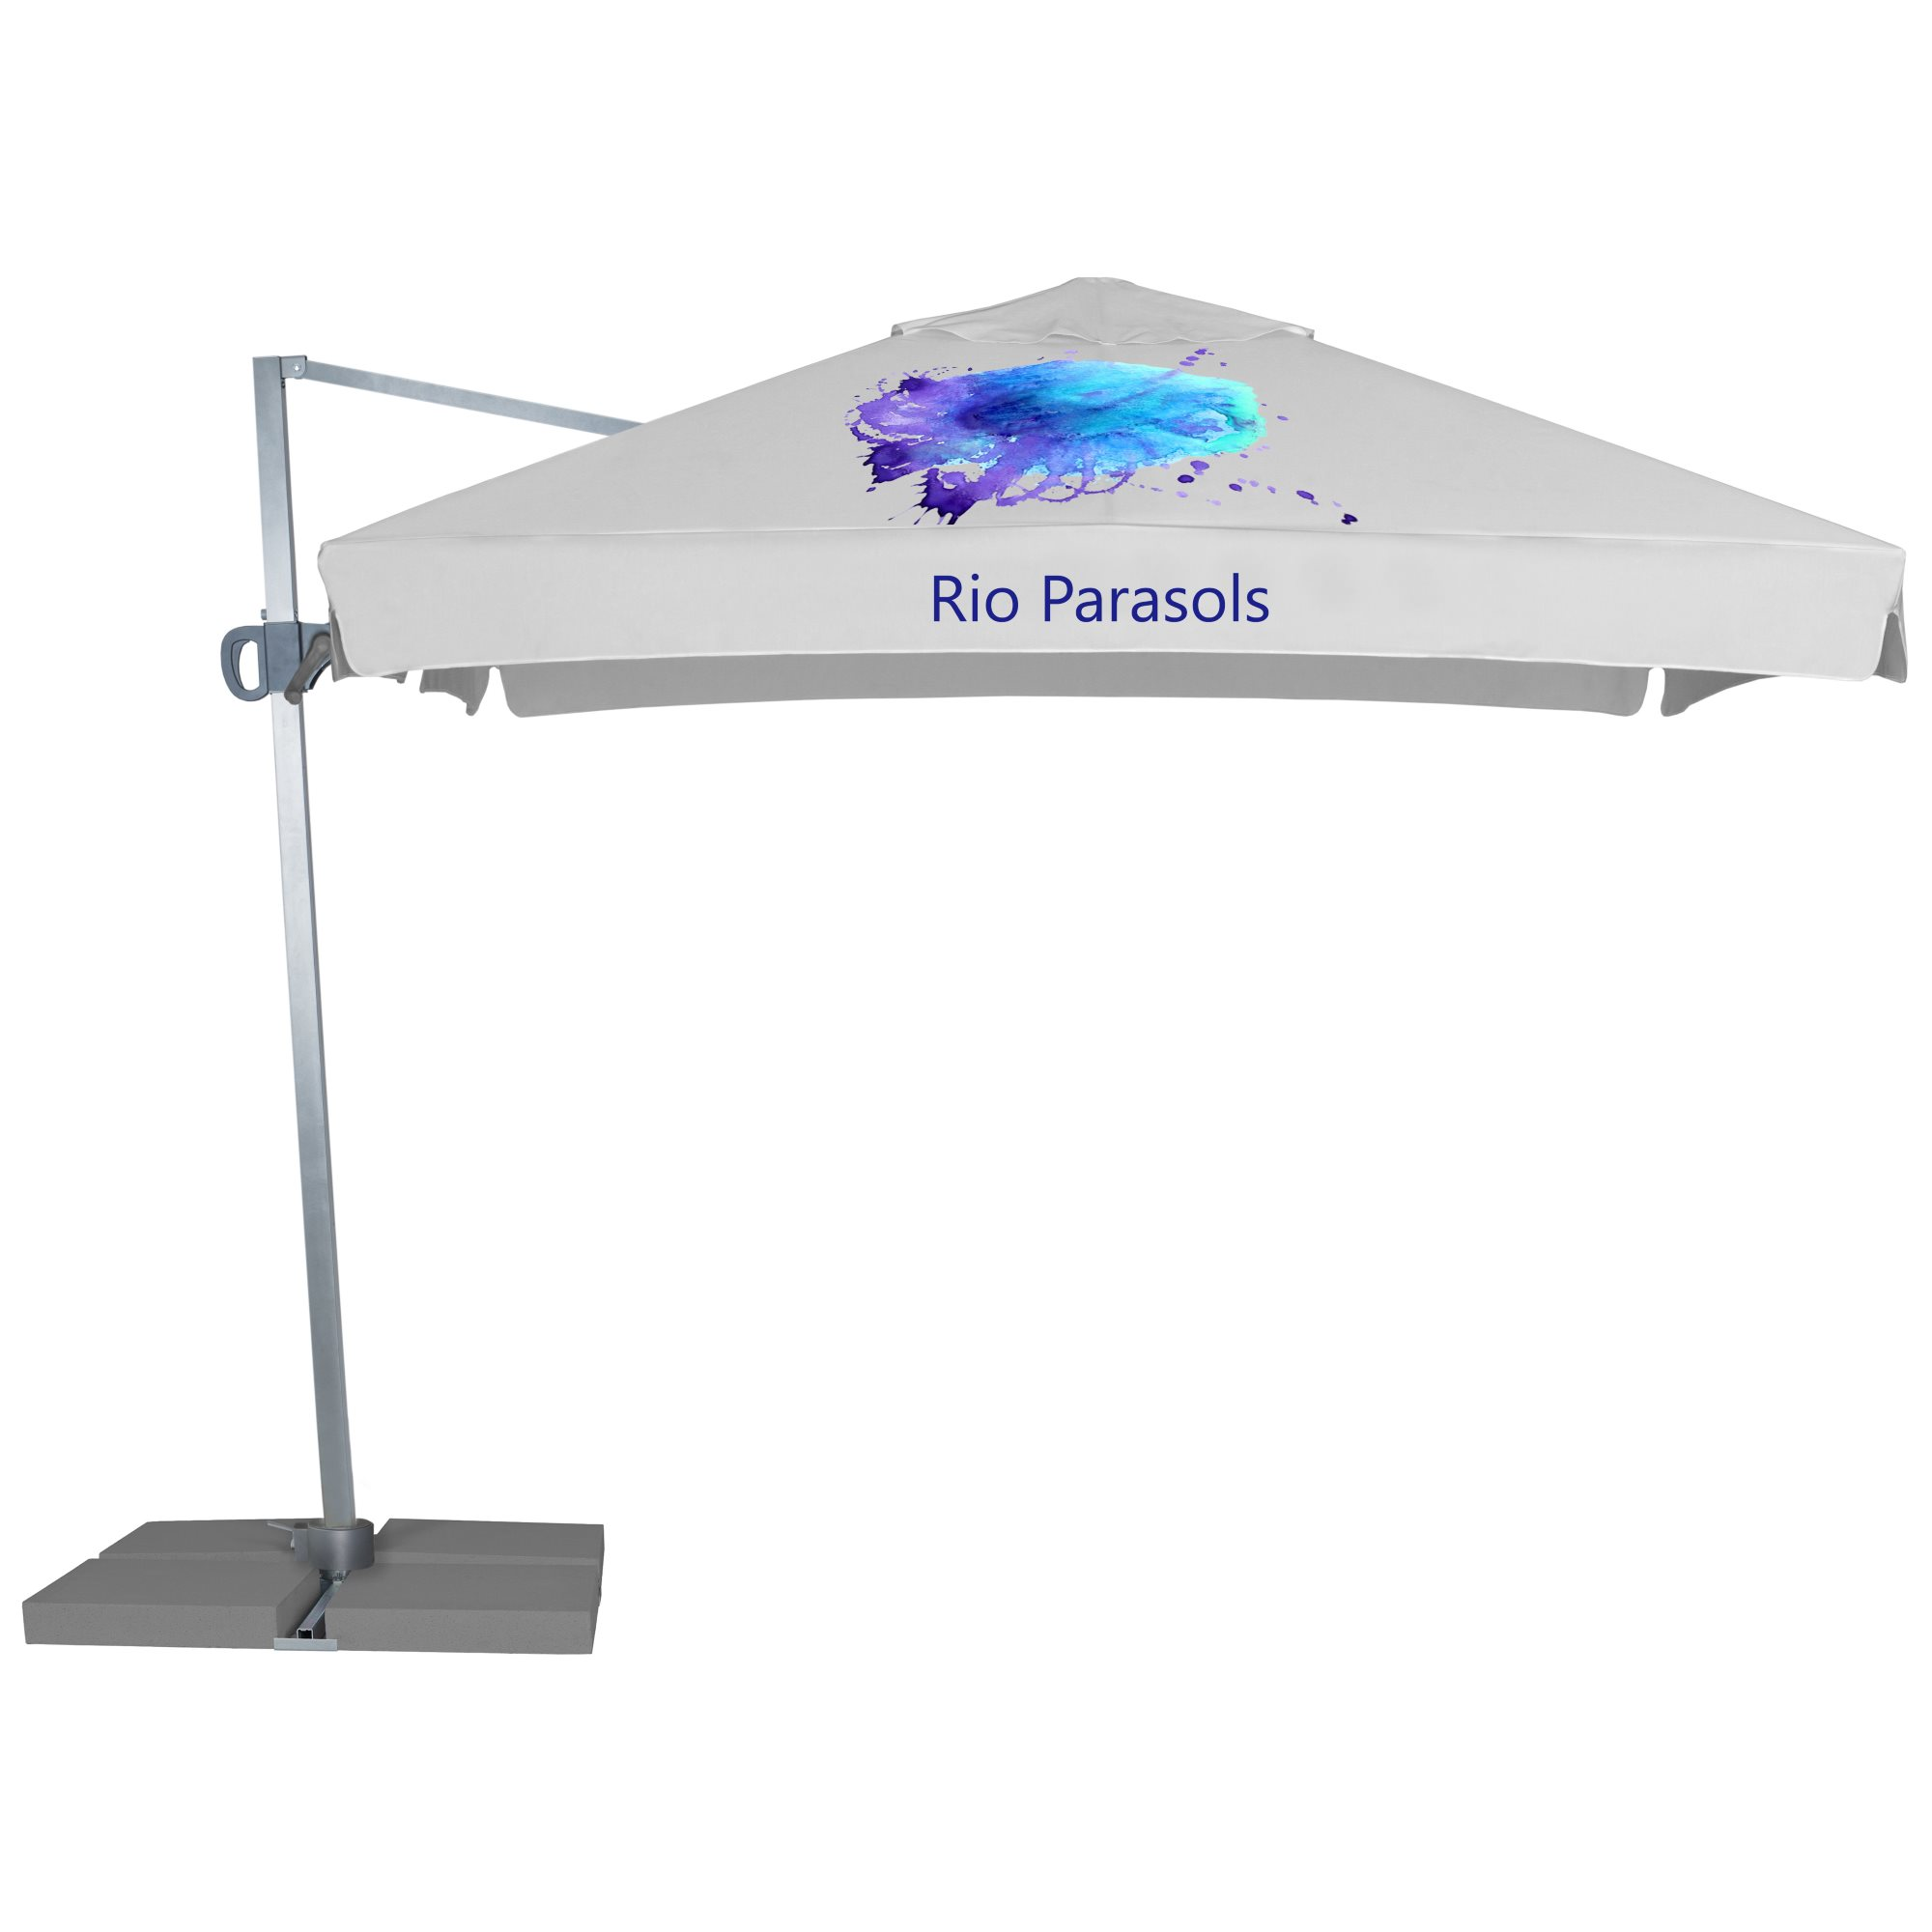 2. Rio Parasols Square 3 m - with fairing